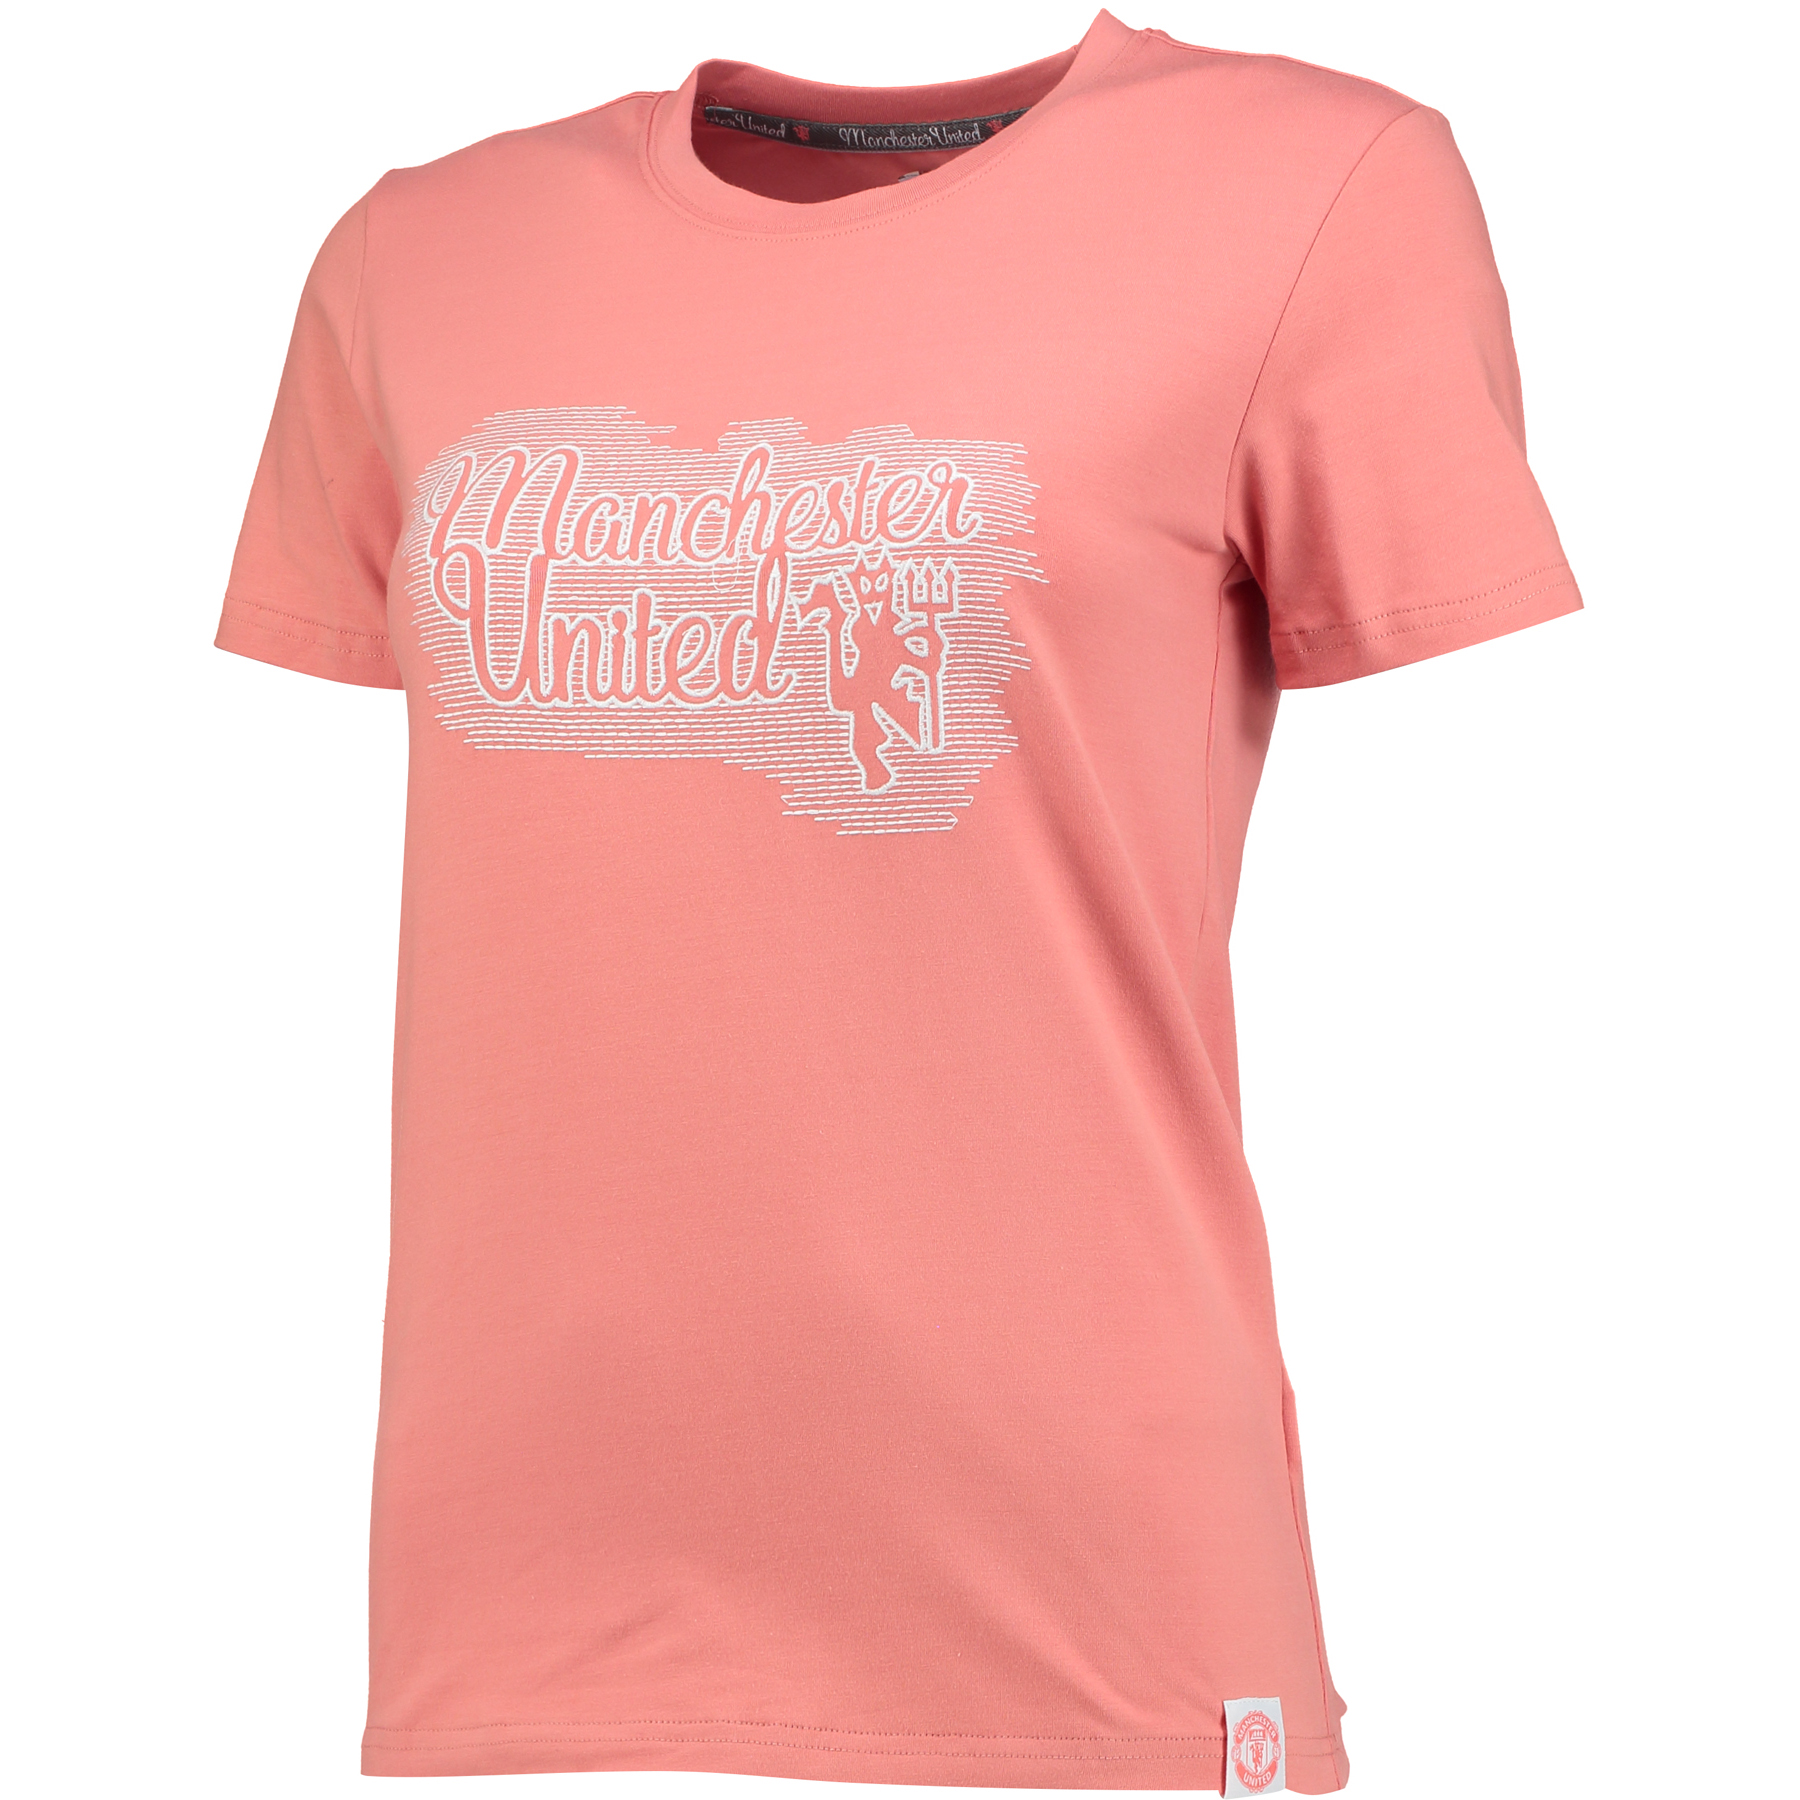 Manchester United Embroidered T-Shirt - Peach Echo - Womens